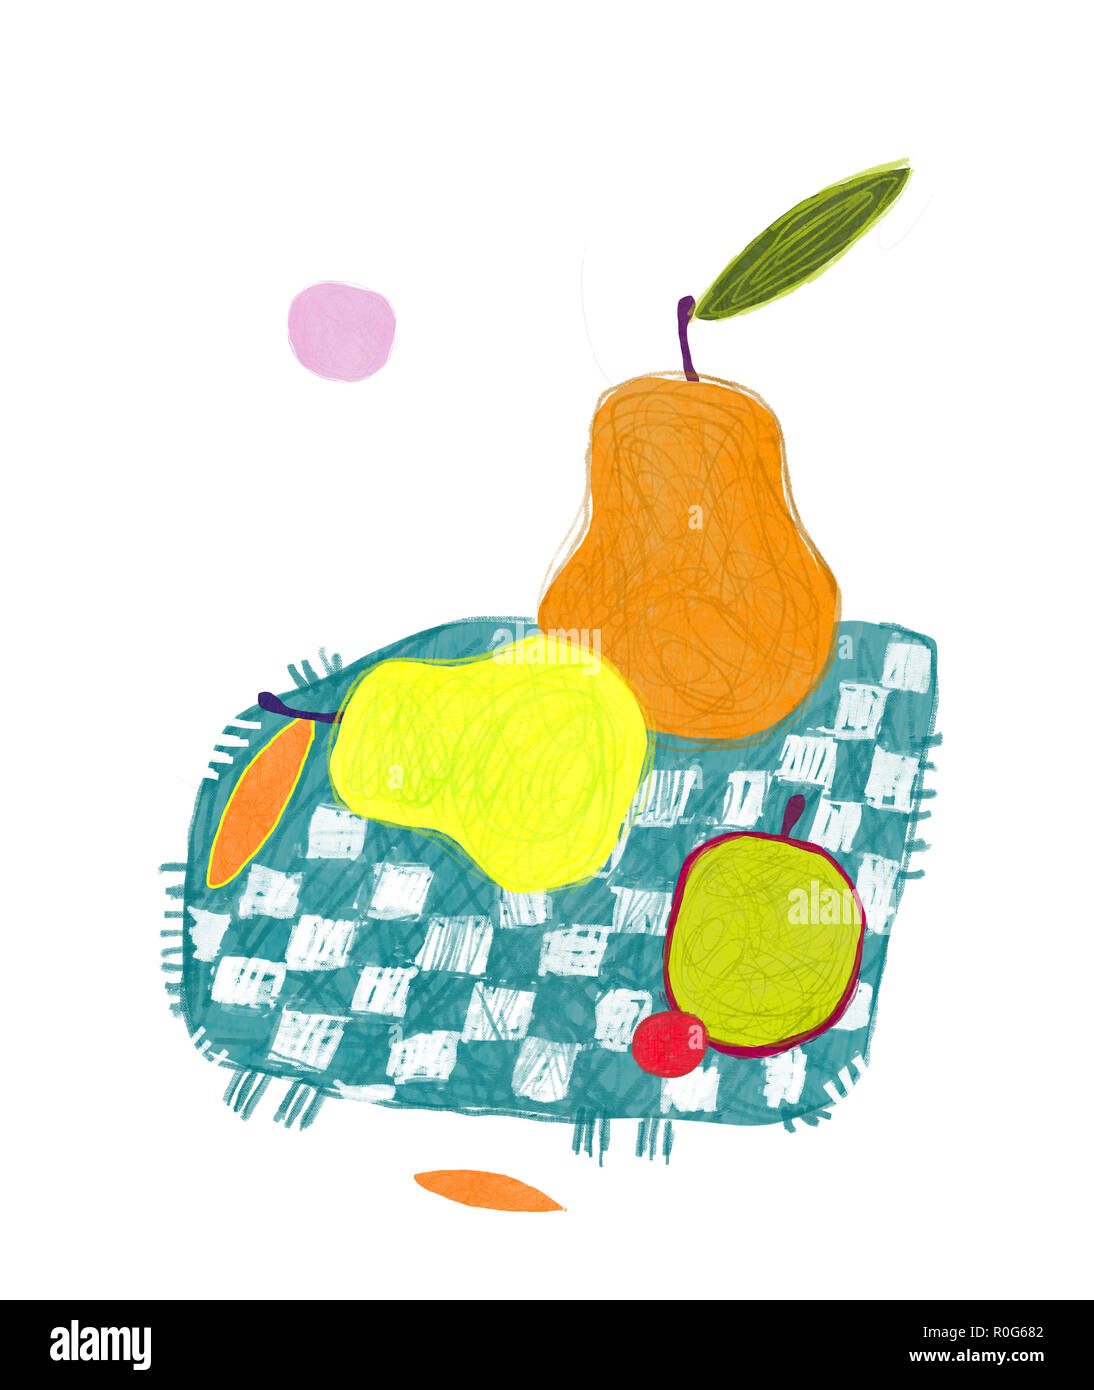 Decorative still life with pears, apple and plum. Illustration in naive style. - Stock Image